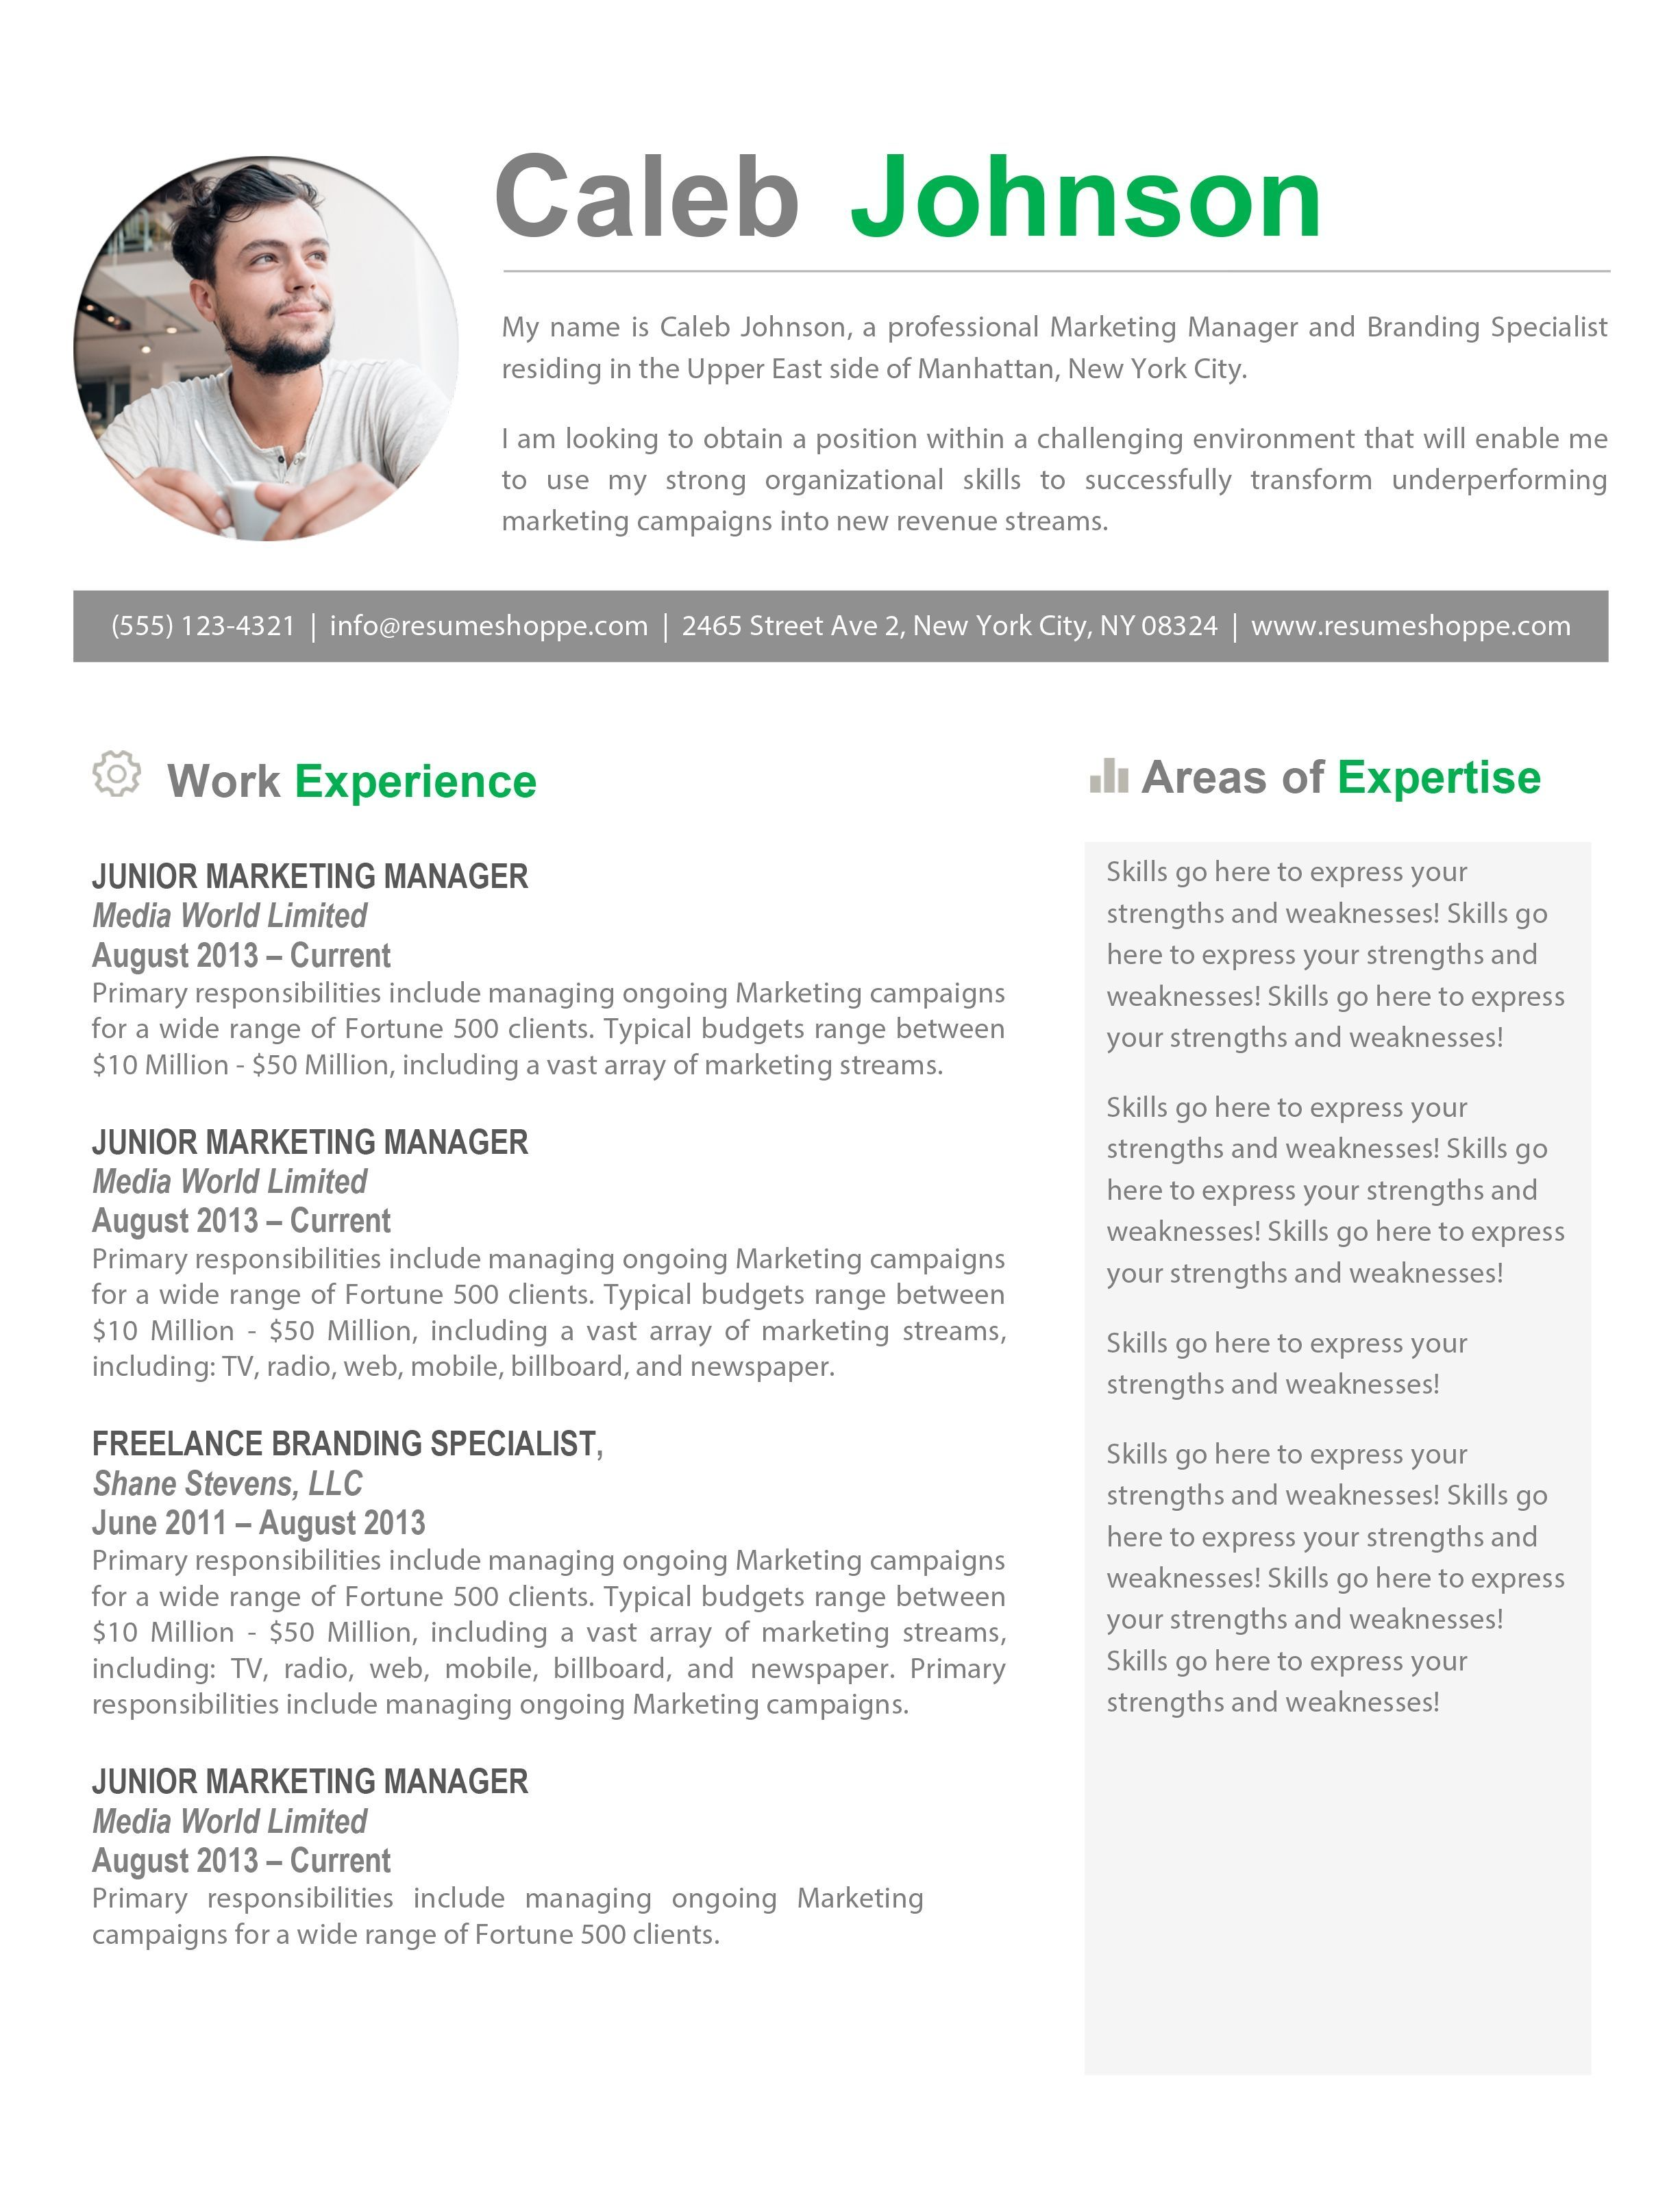 Apple Resume Template Resume Templates Apple #apple #resume #resumetemplates #templates .